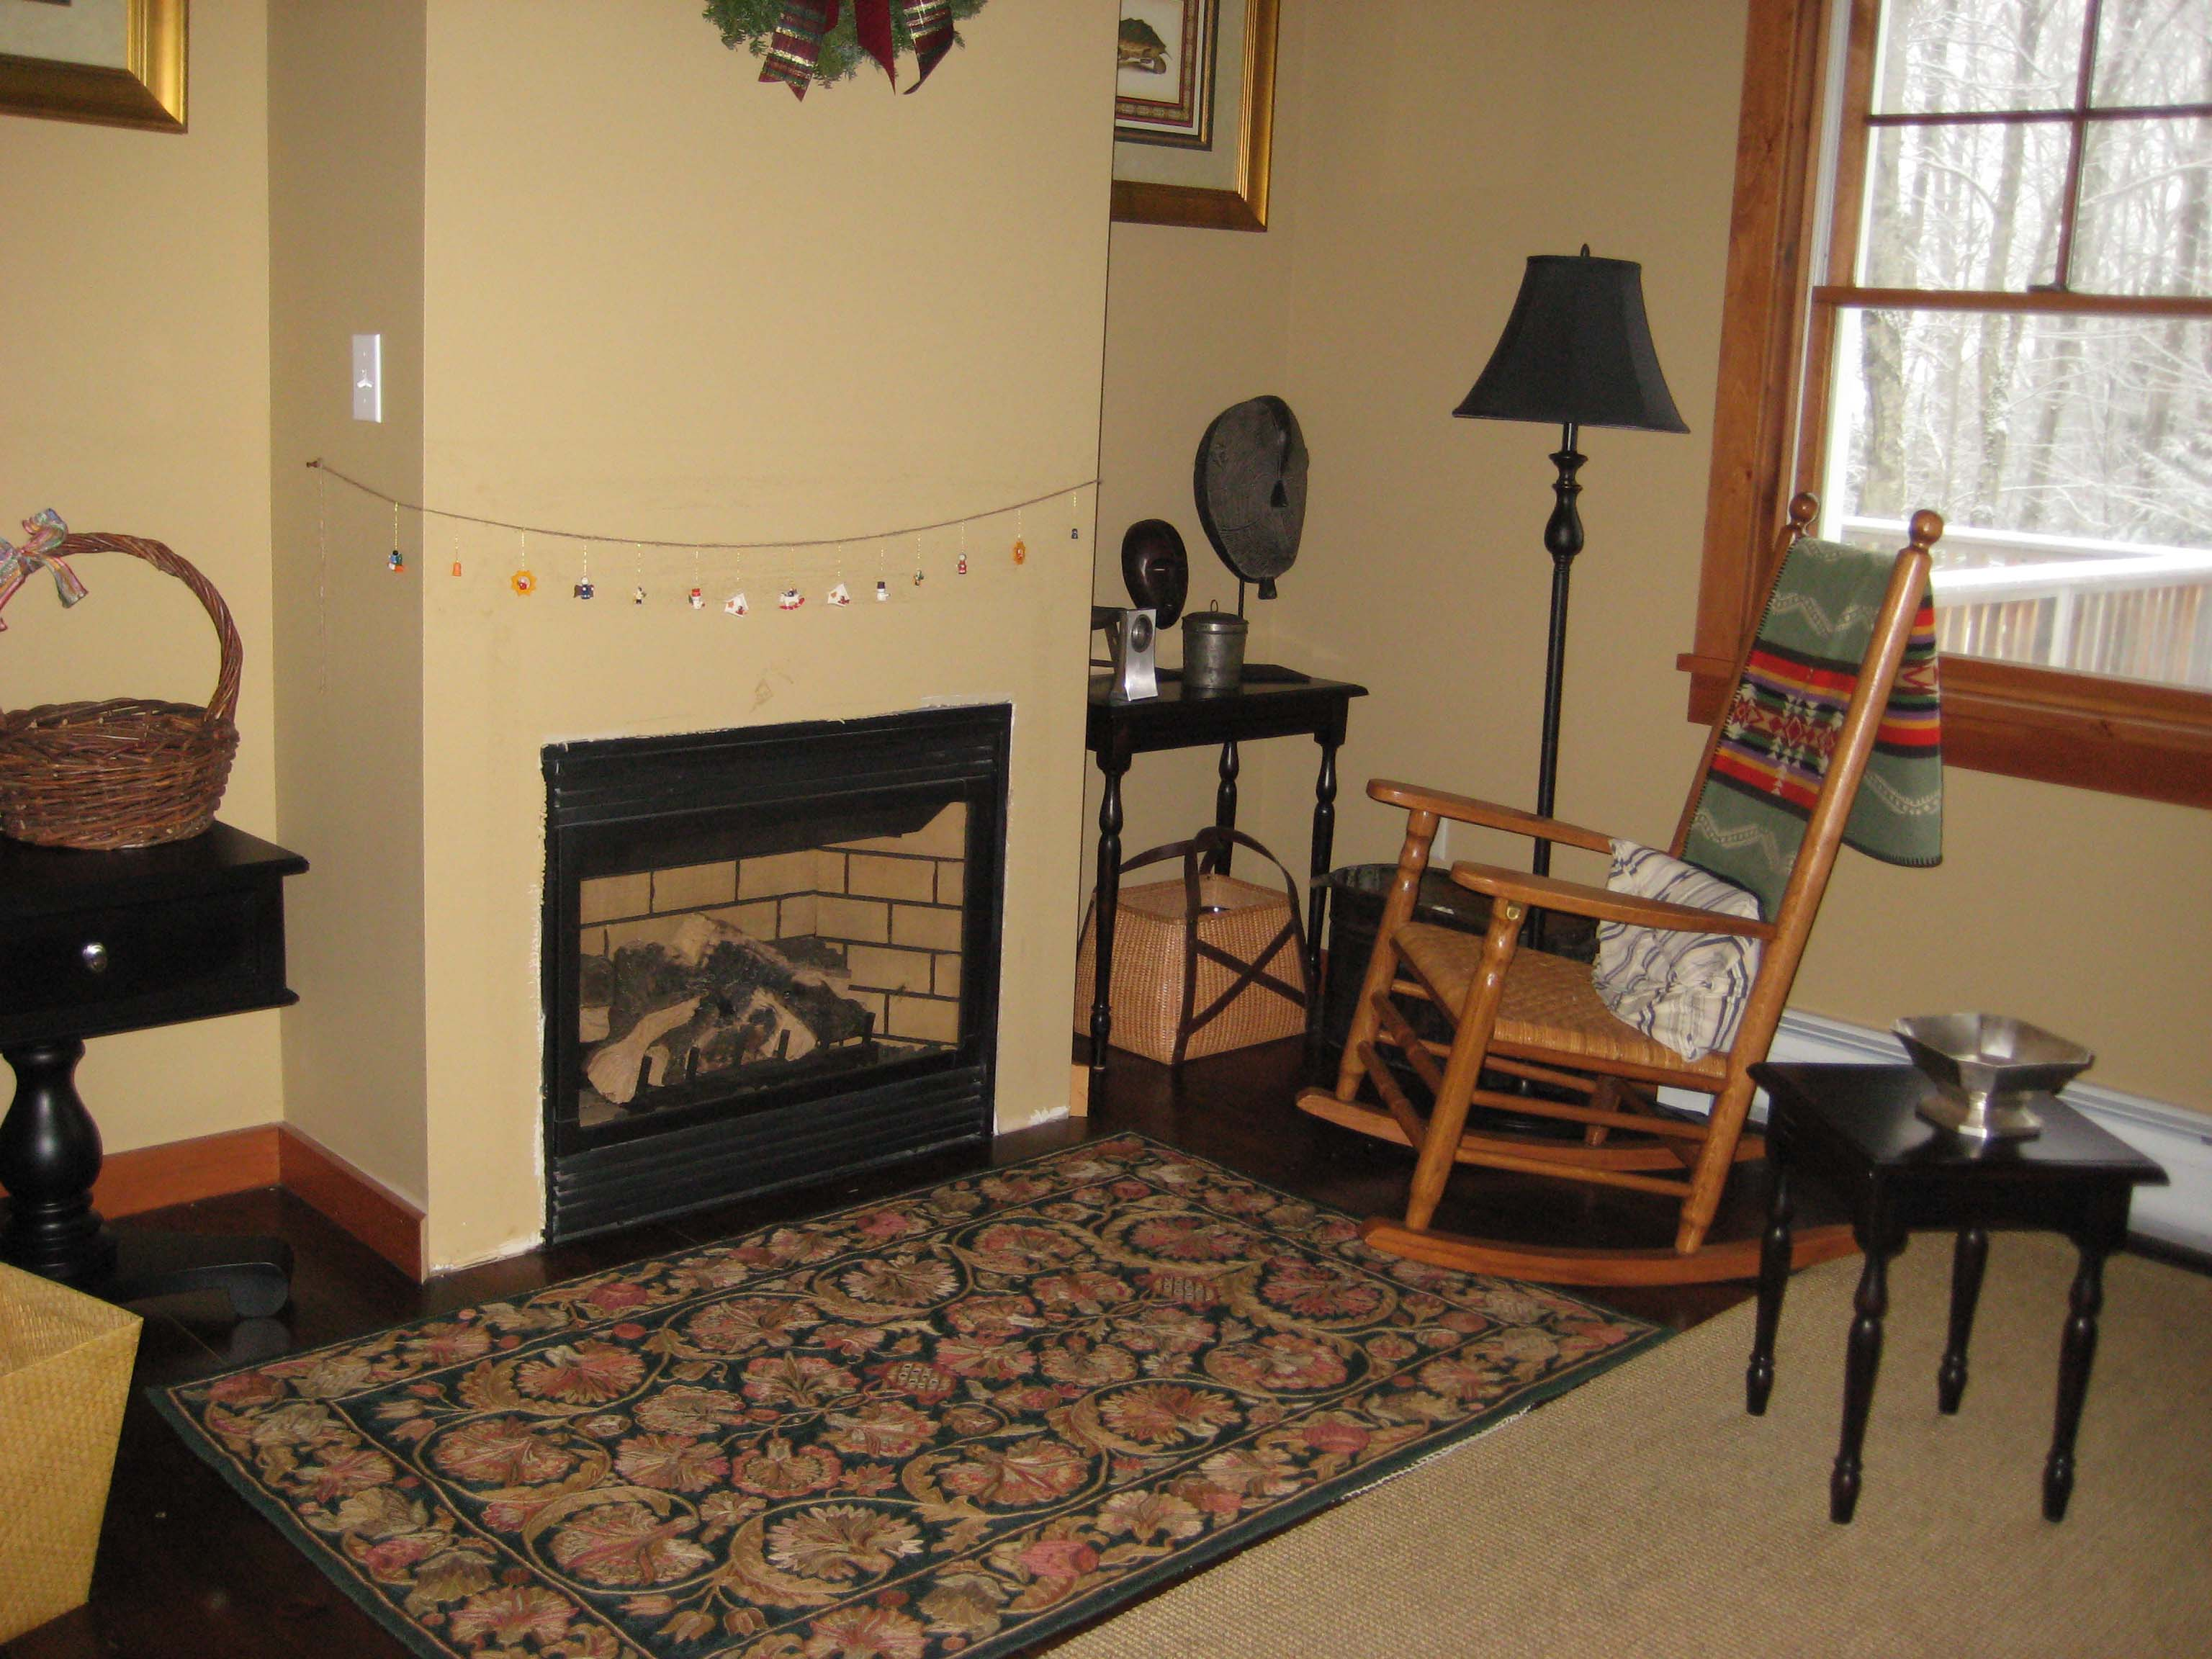 TRUNDLE ROOM GAS FIREPLACE